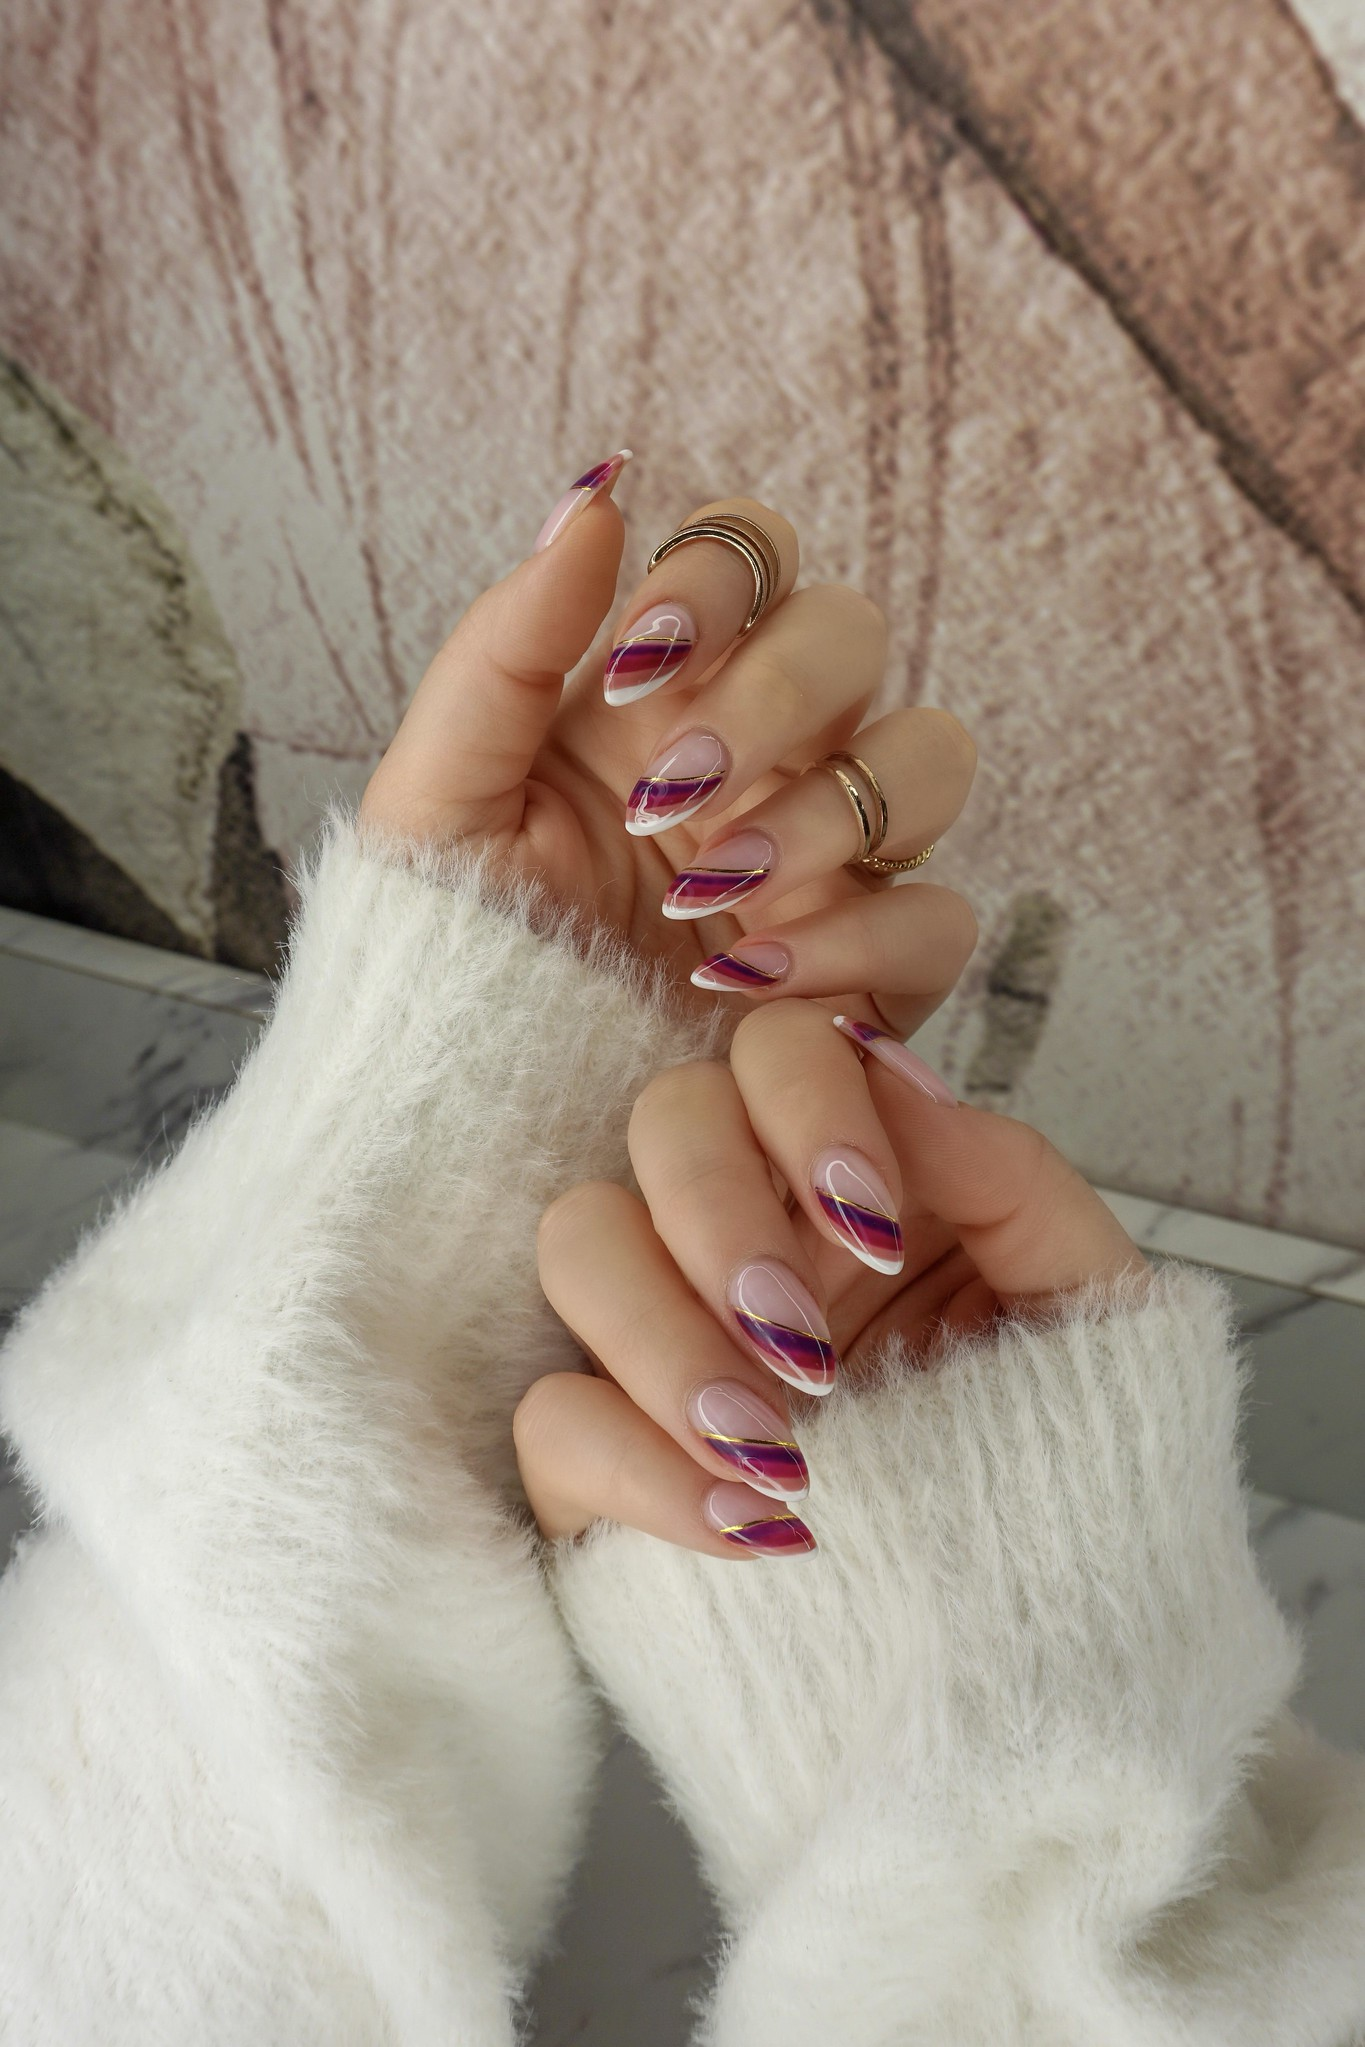 Fall French Twist Nails | Fall Rainbow Stripe Nails | Unique French Manicure | Fall Nails | Thanksgiving Nails | November Nails | Nail Ideas | Nail Art Inspiration | Nail Designs | Autumn Rainbow Mani | Gold Rings | Almond Shaped Nails